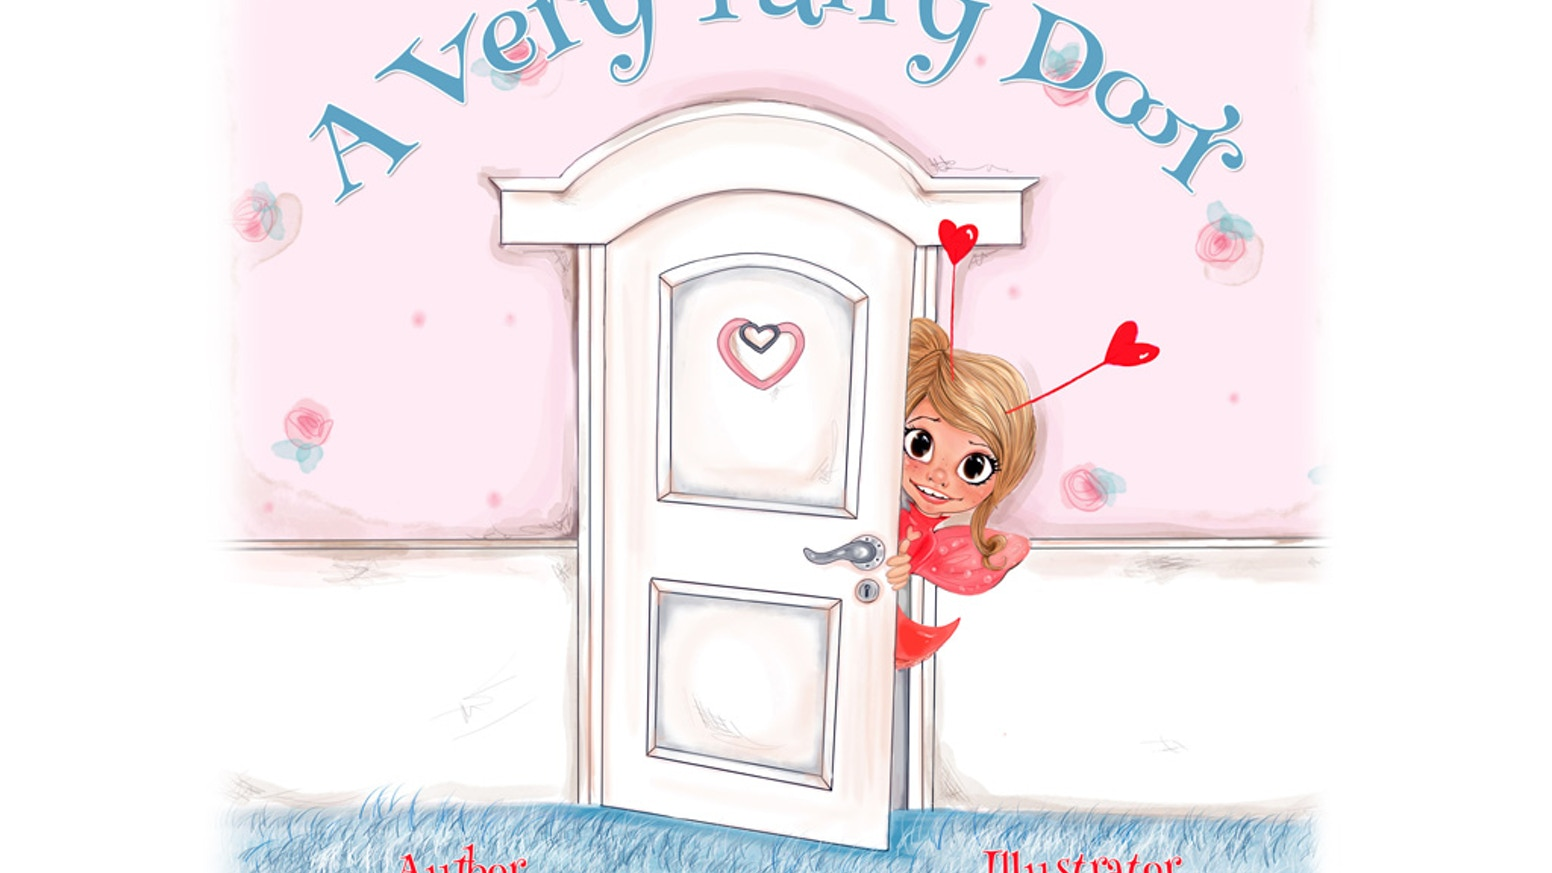 A very fairy door by carlie and kimberly brown kickstarter for Original fairy door